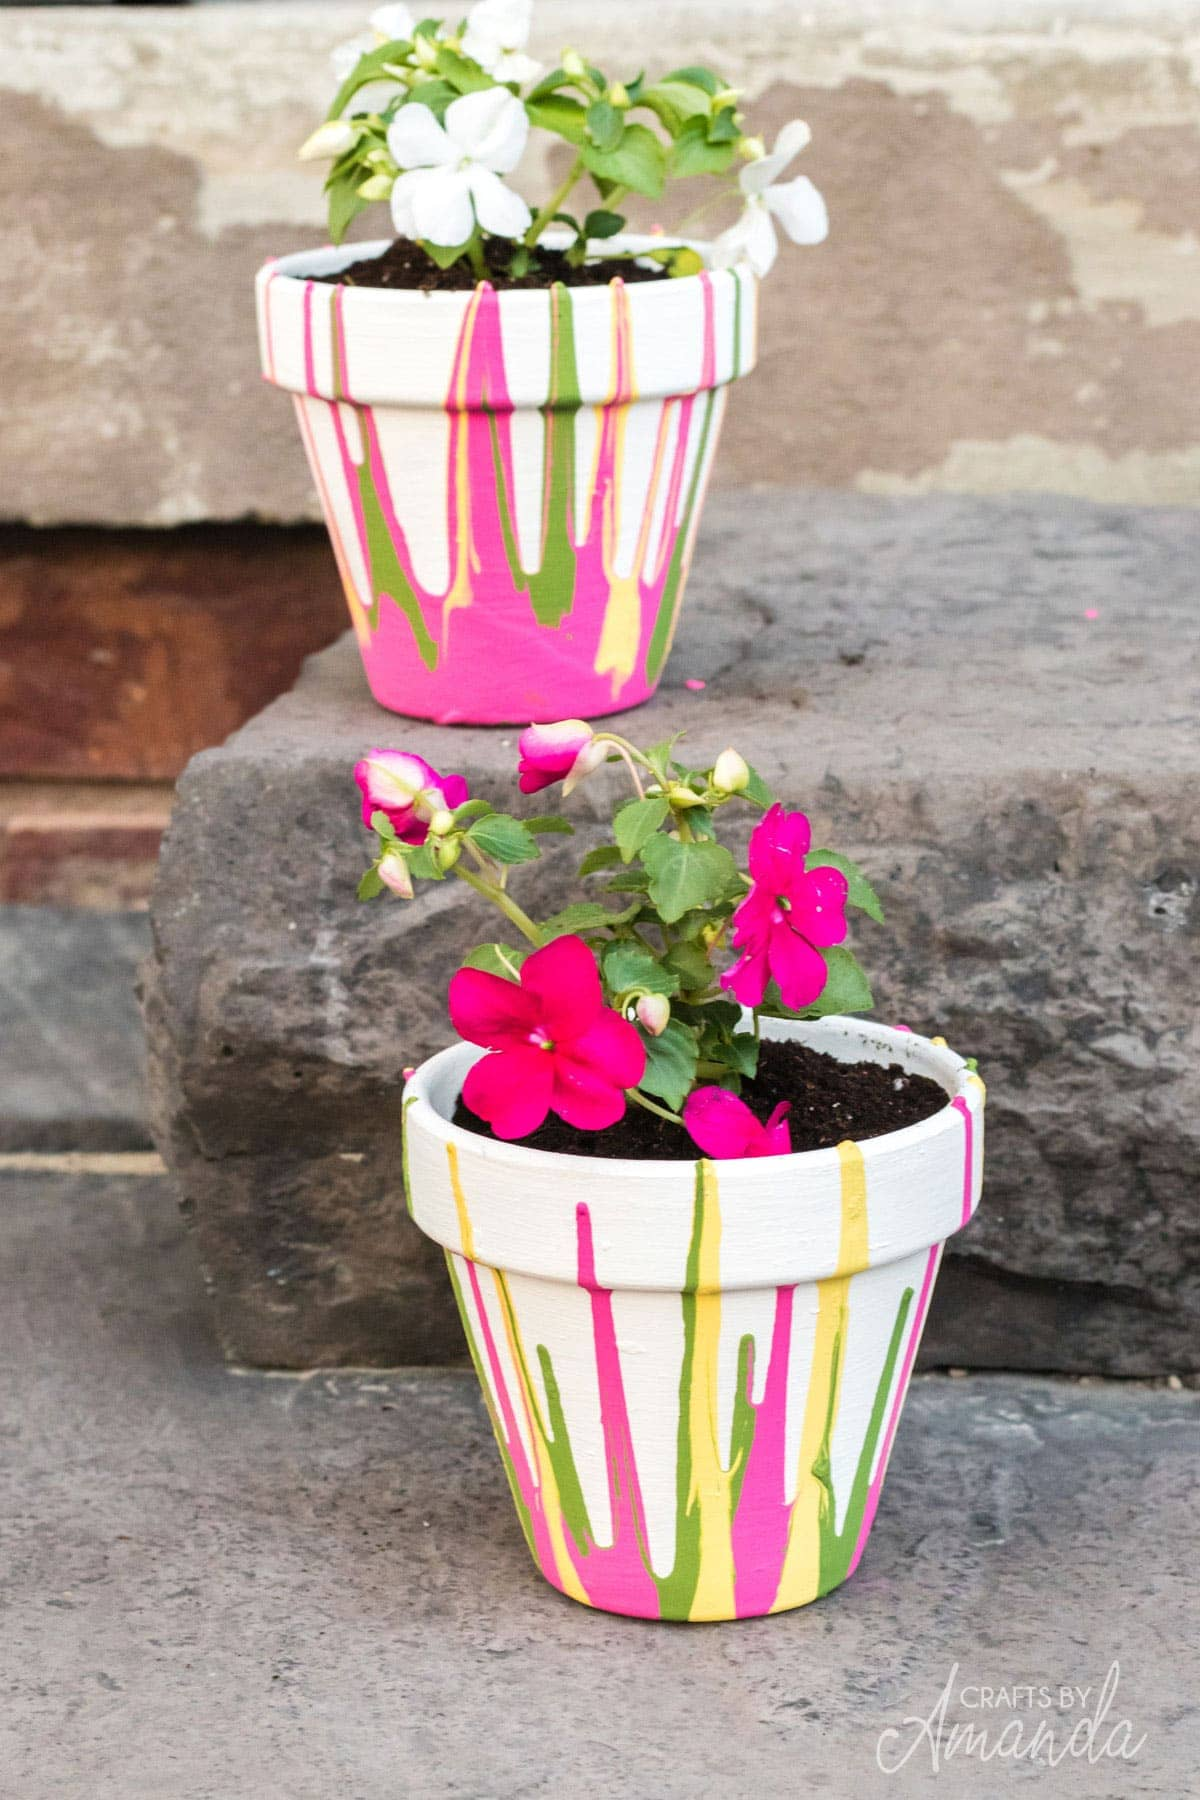 Drip painted clay pots with bright neon colors